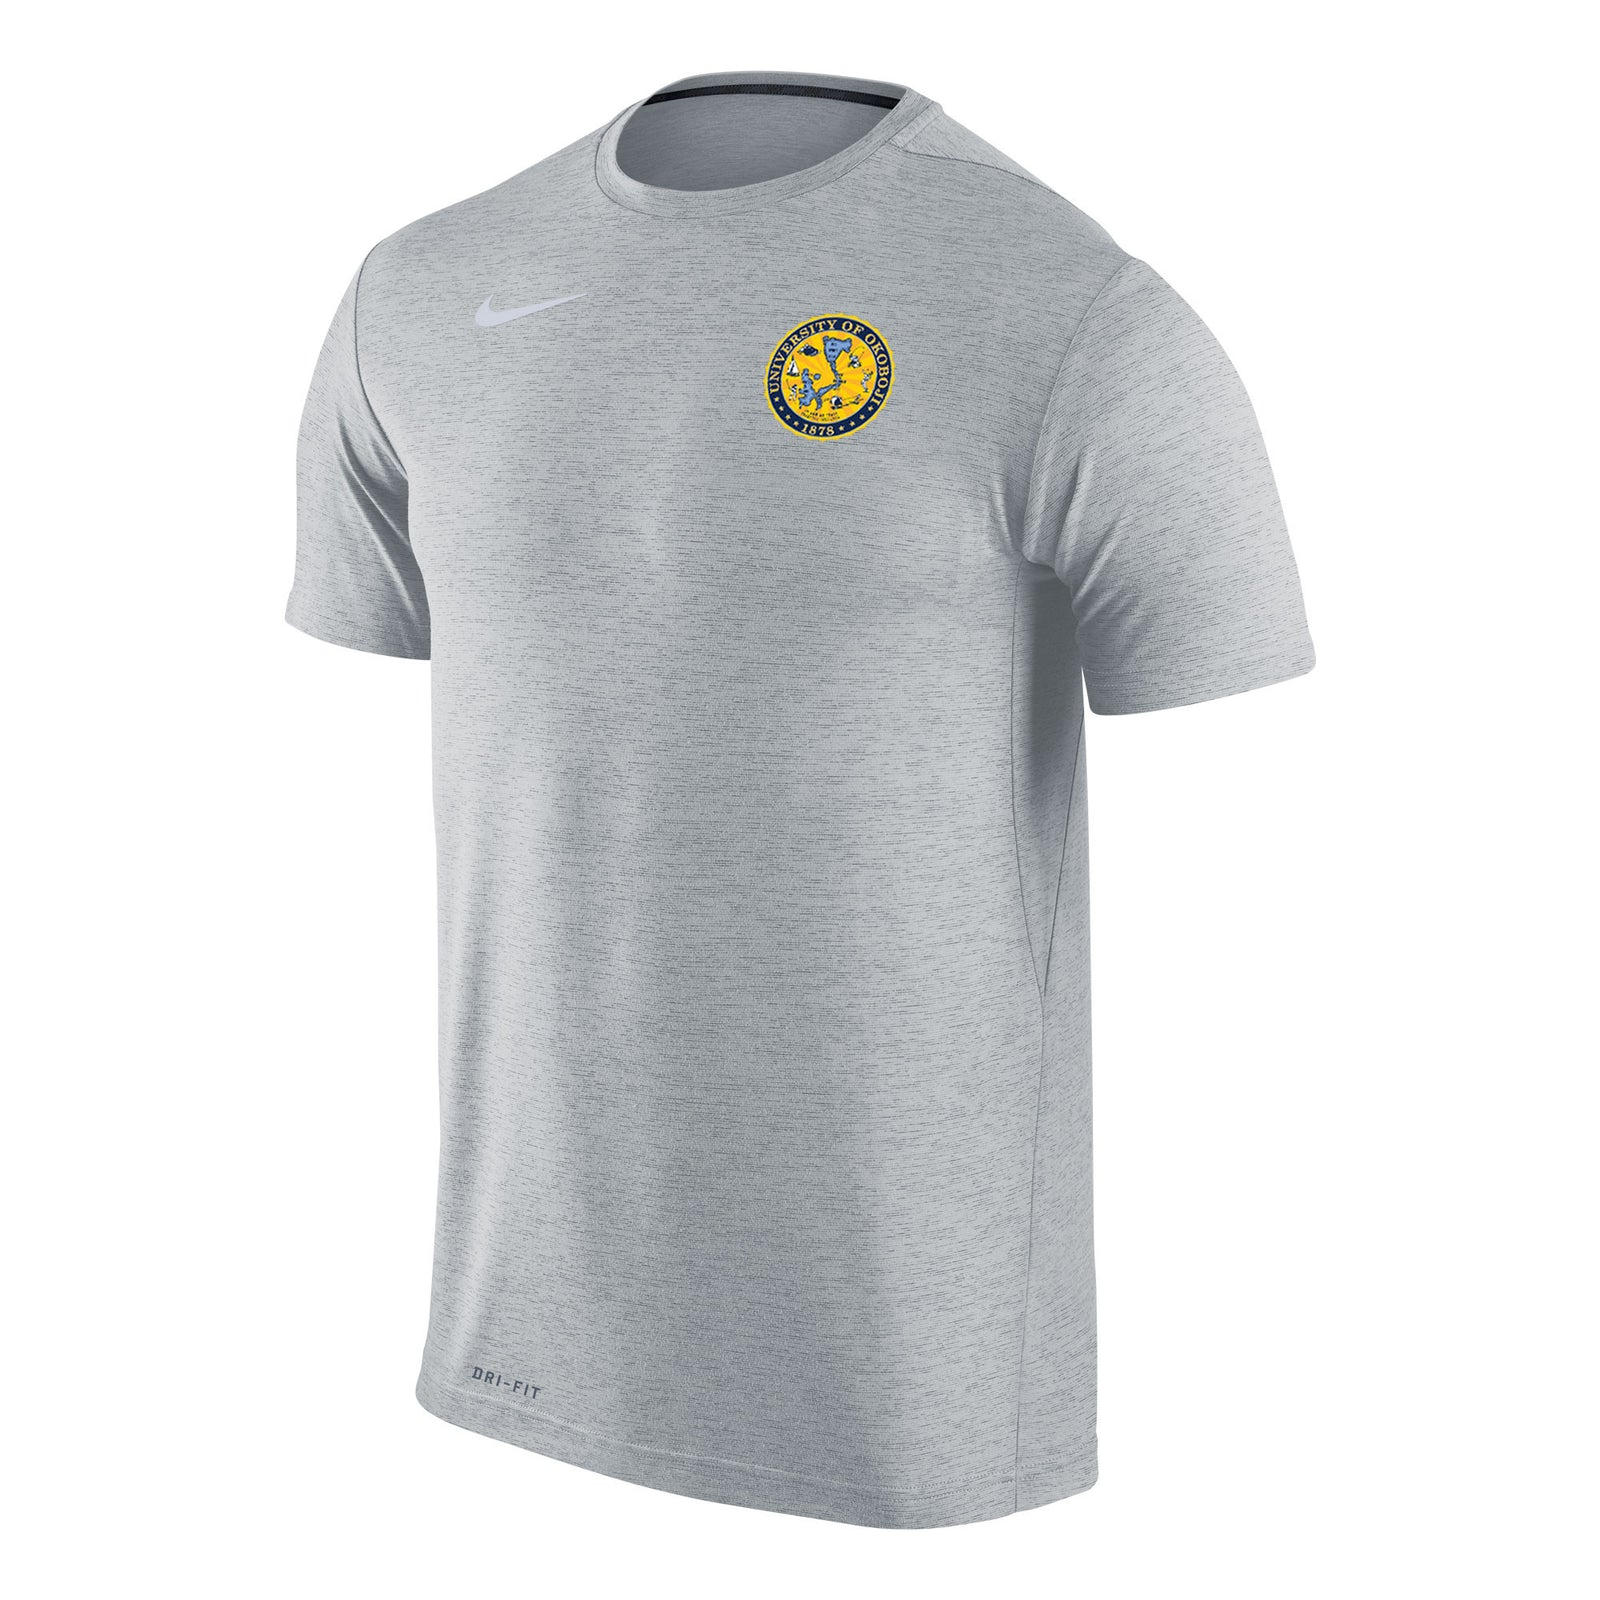 aabd9349 Men's Nike Dri-FIT Touch Short Sleeve Tee - Wolf Grey Heather